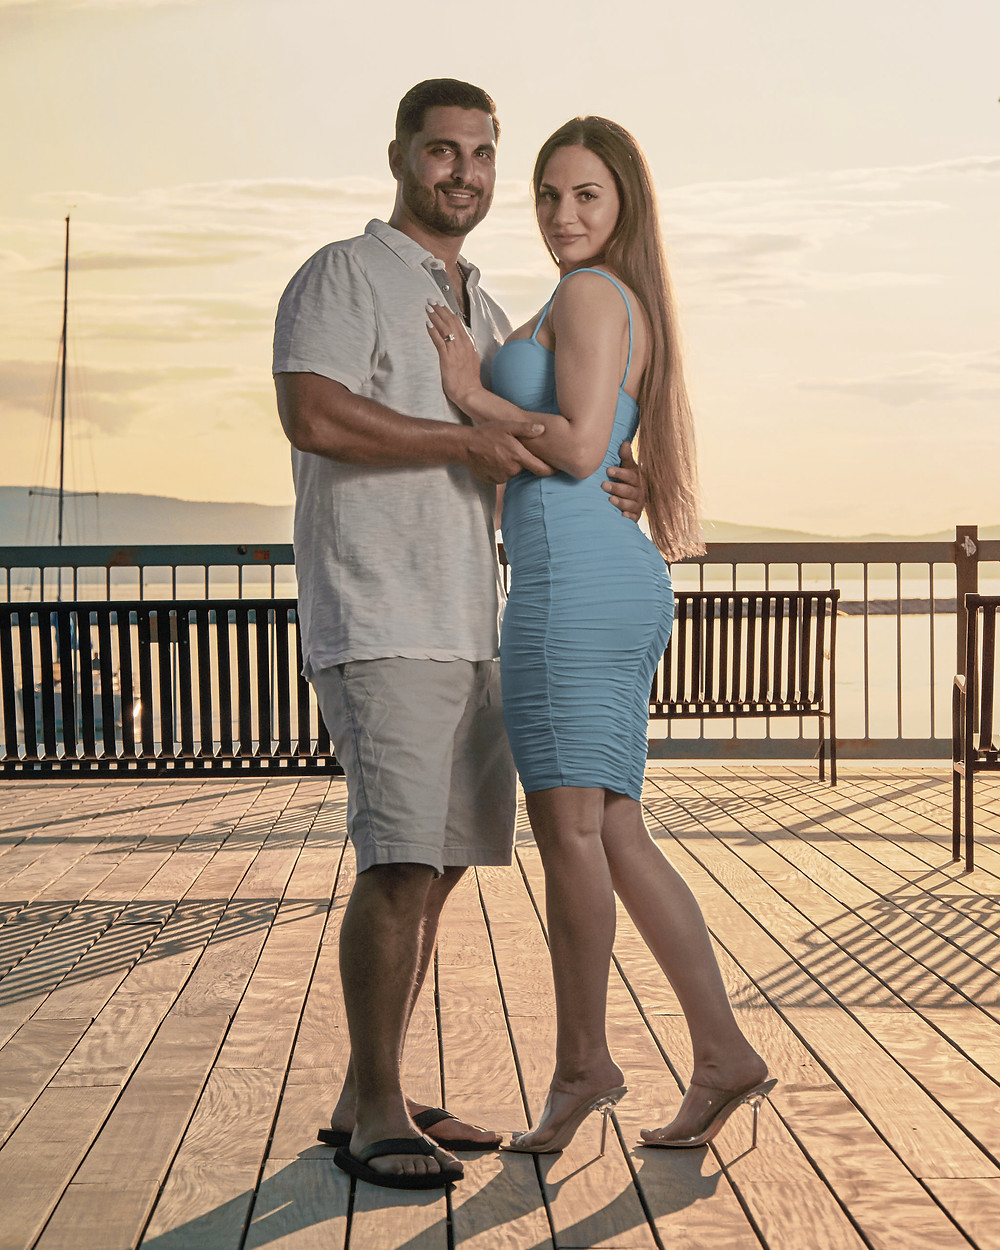 A beautiful woman poses with her fiancé on a pier in the evening glow of the fading sun.